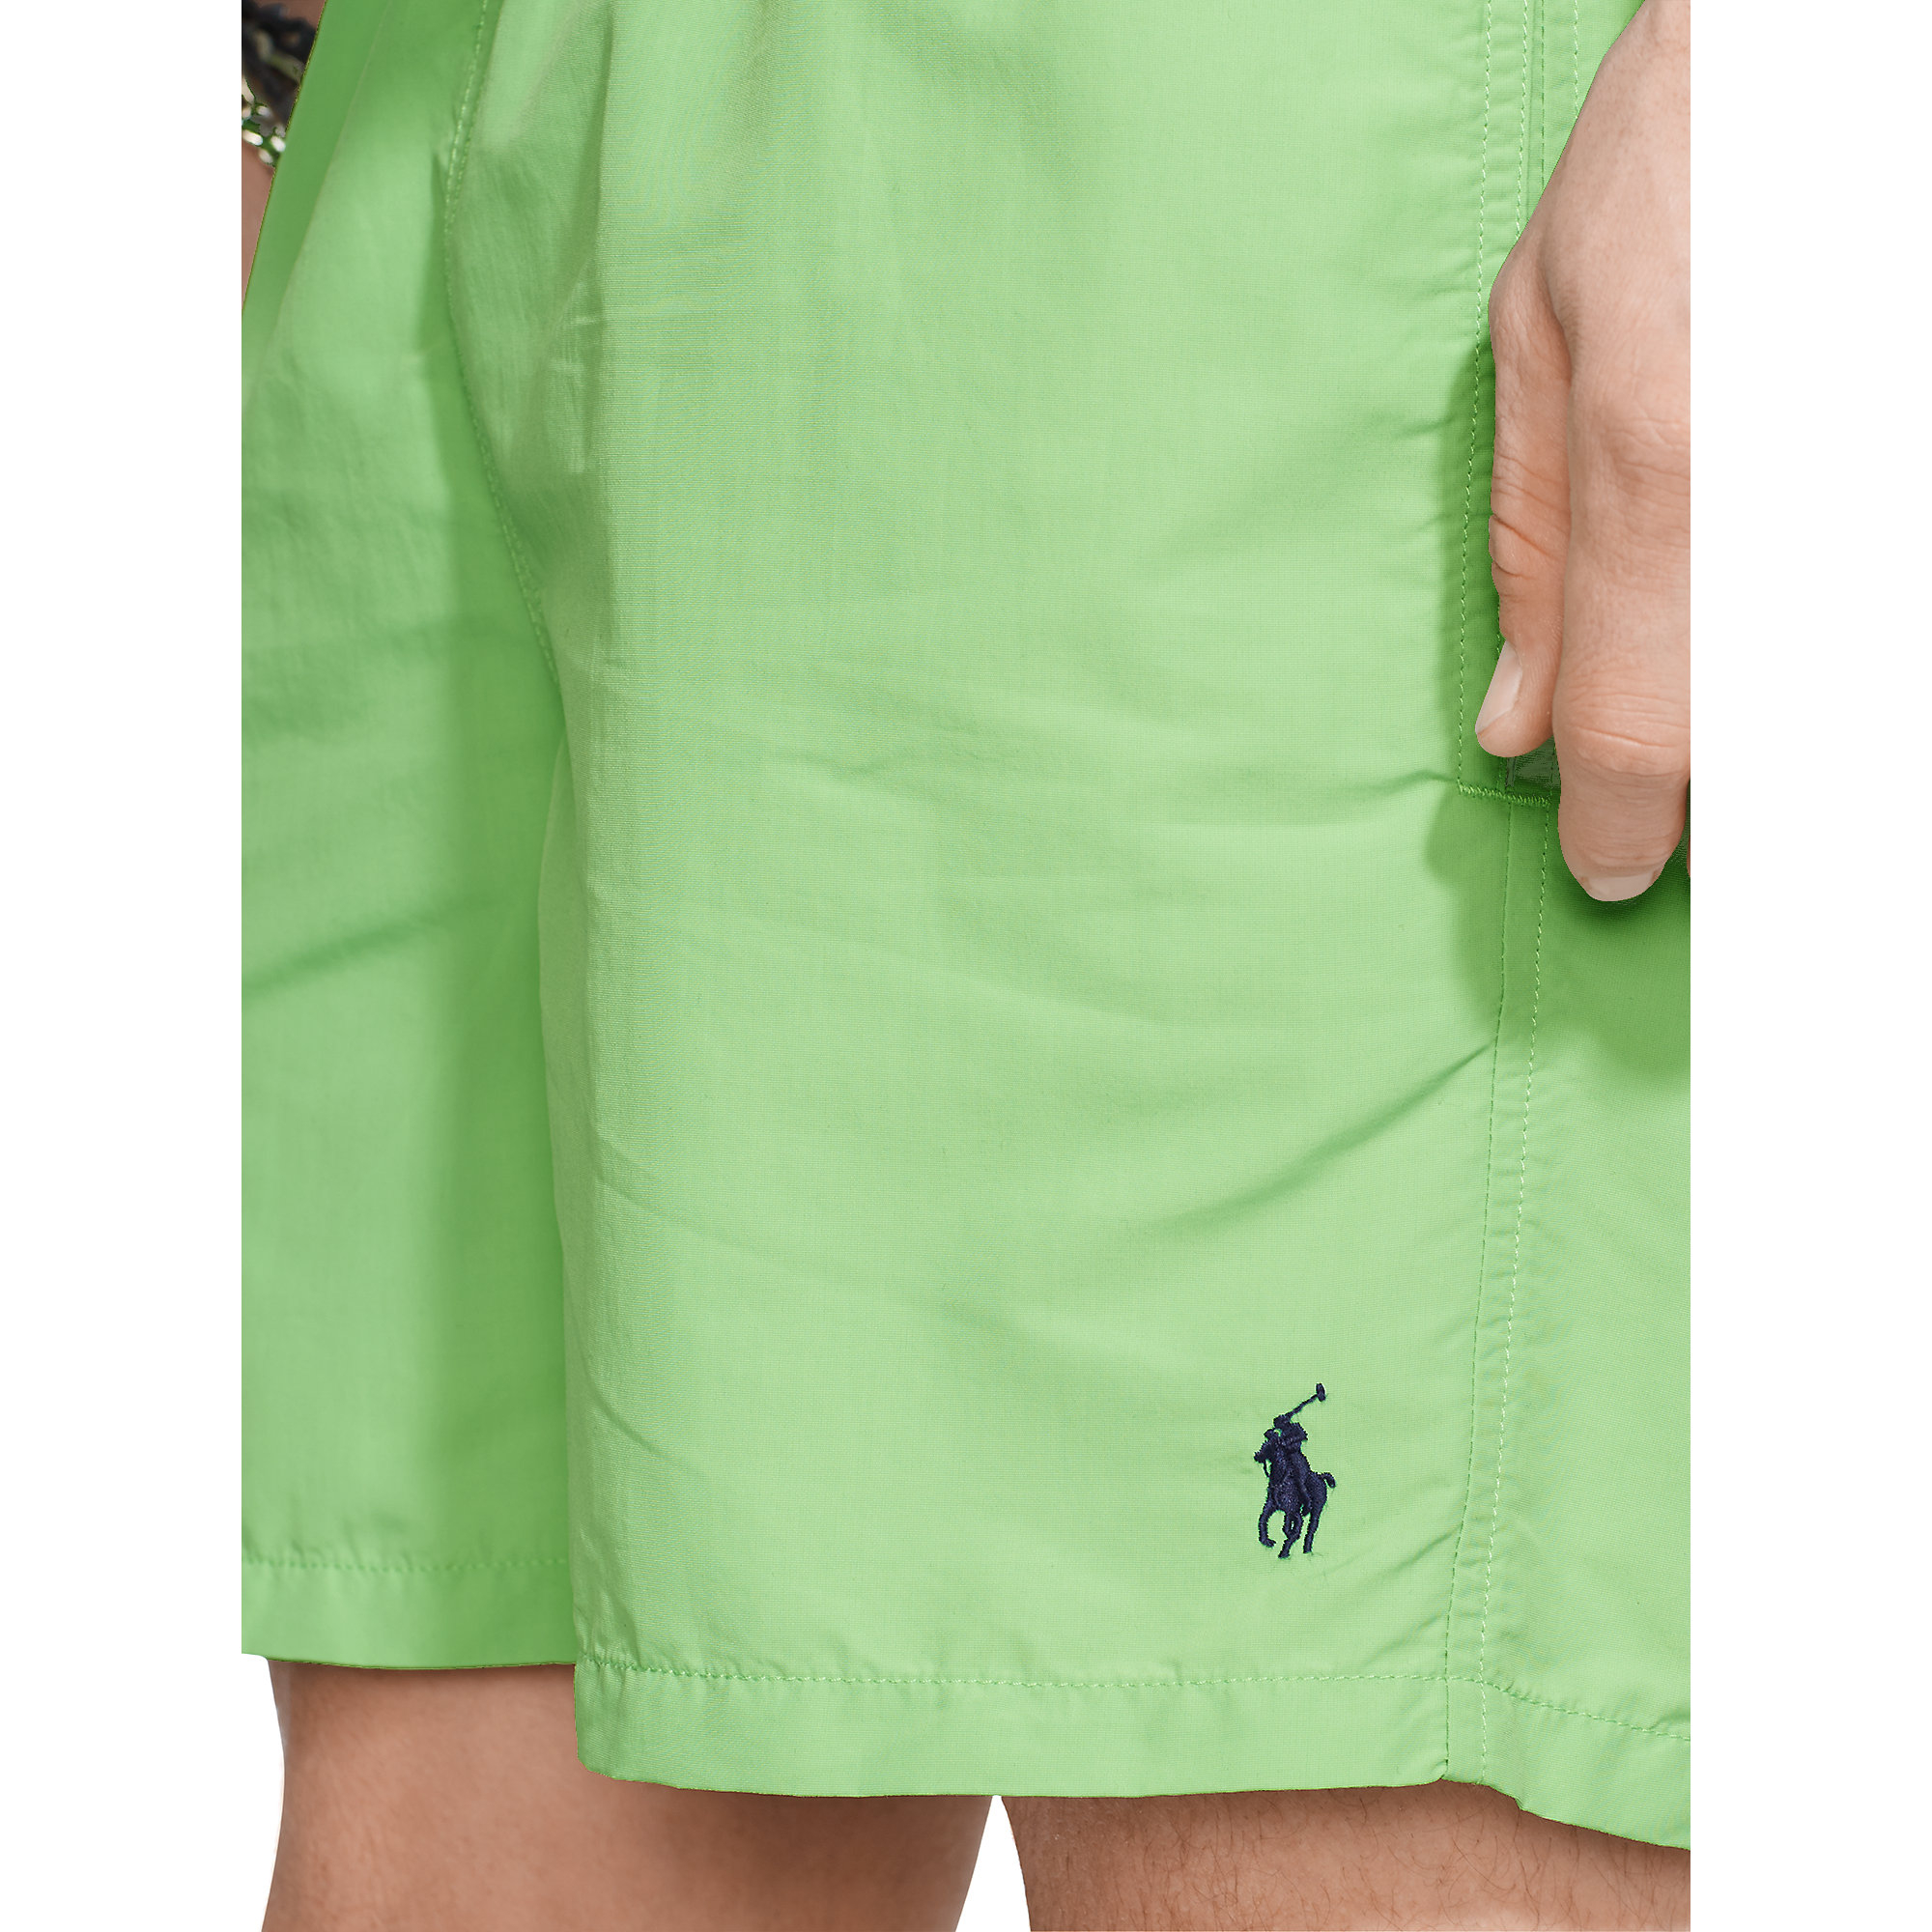 cfda1db66 ... switzerland lyst polo ralph lauren 6 solid hawaiian swim trunk in green  for men fc27c 03484